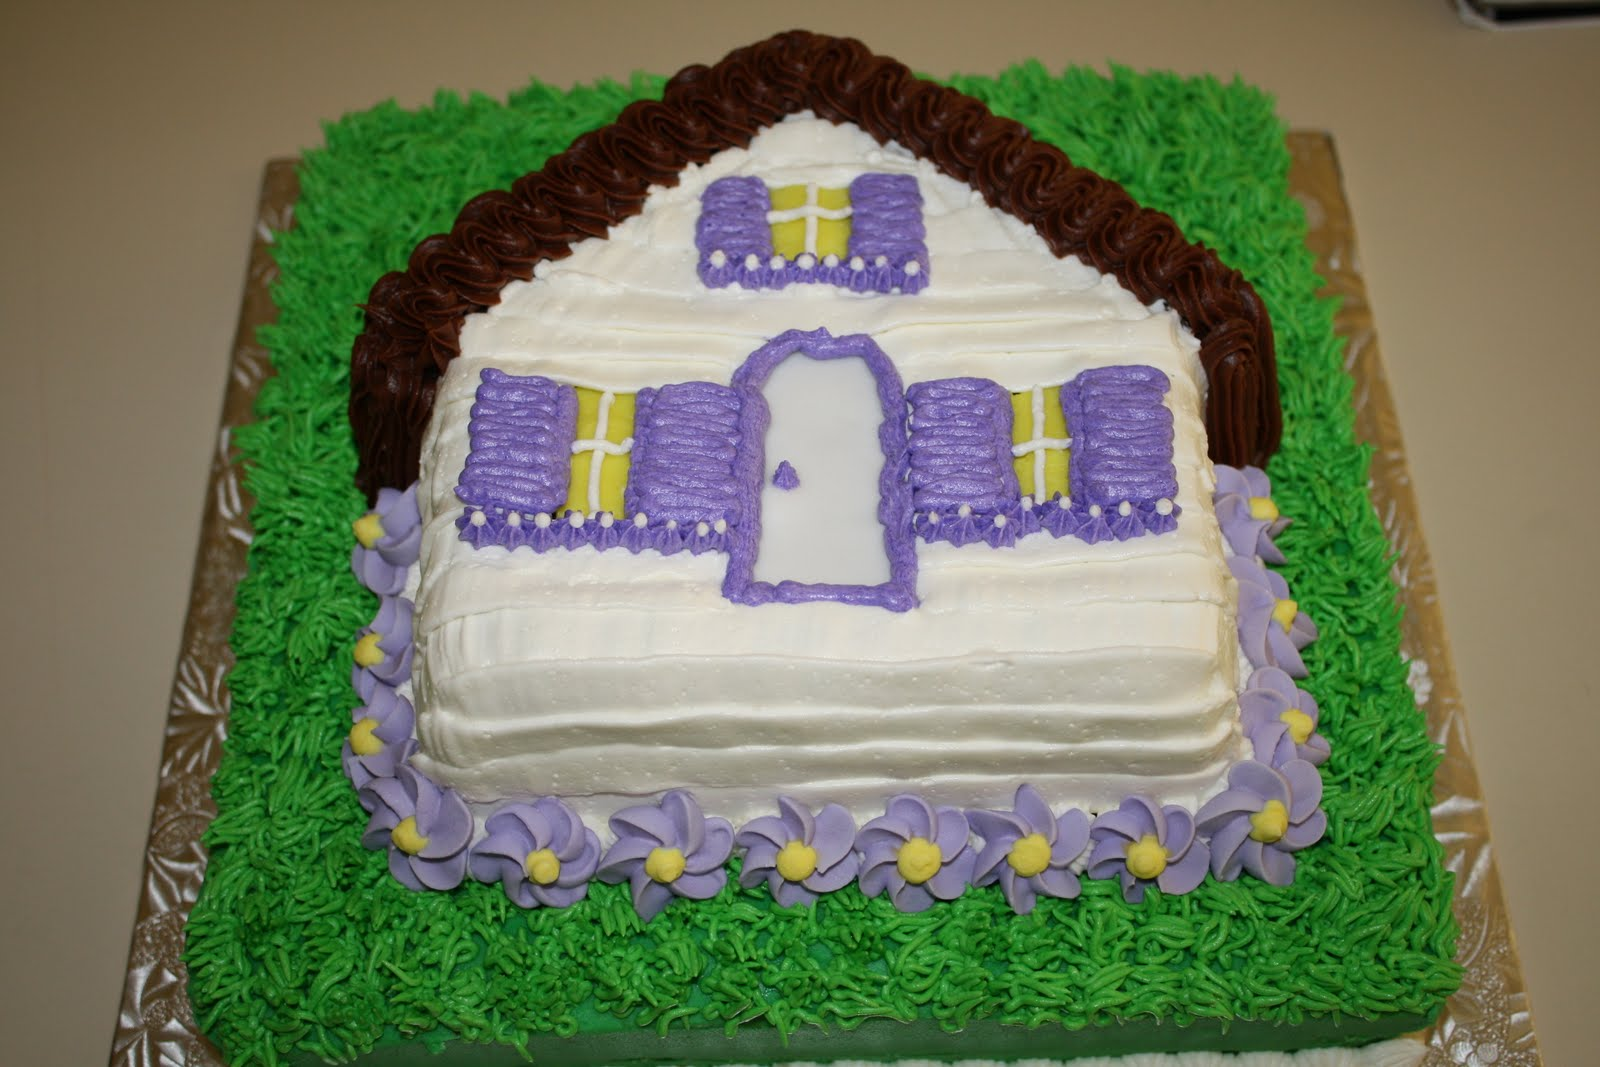 Cake Designs For Housewarming : CC s Cake Decorating: Housewarming cake